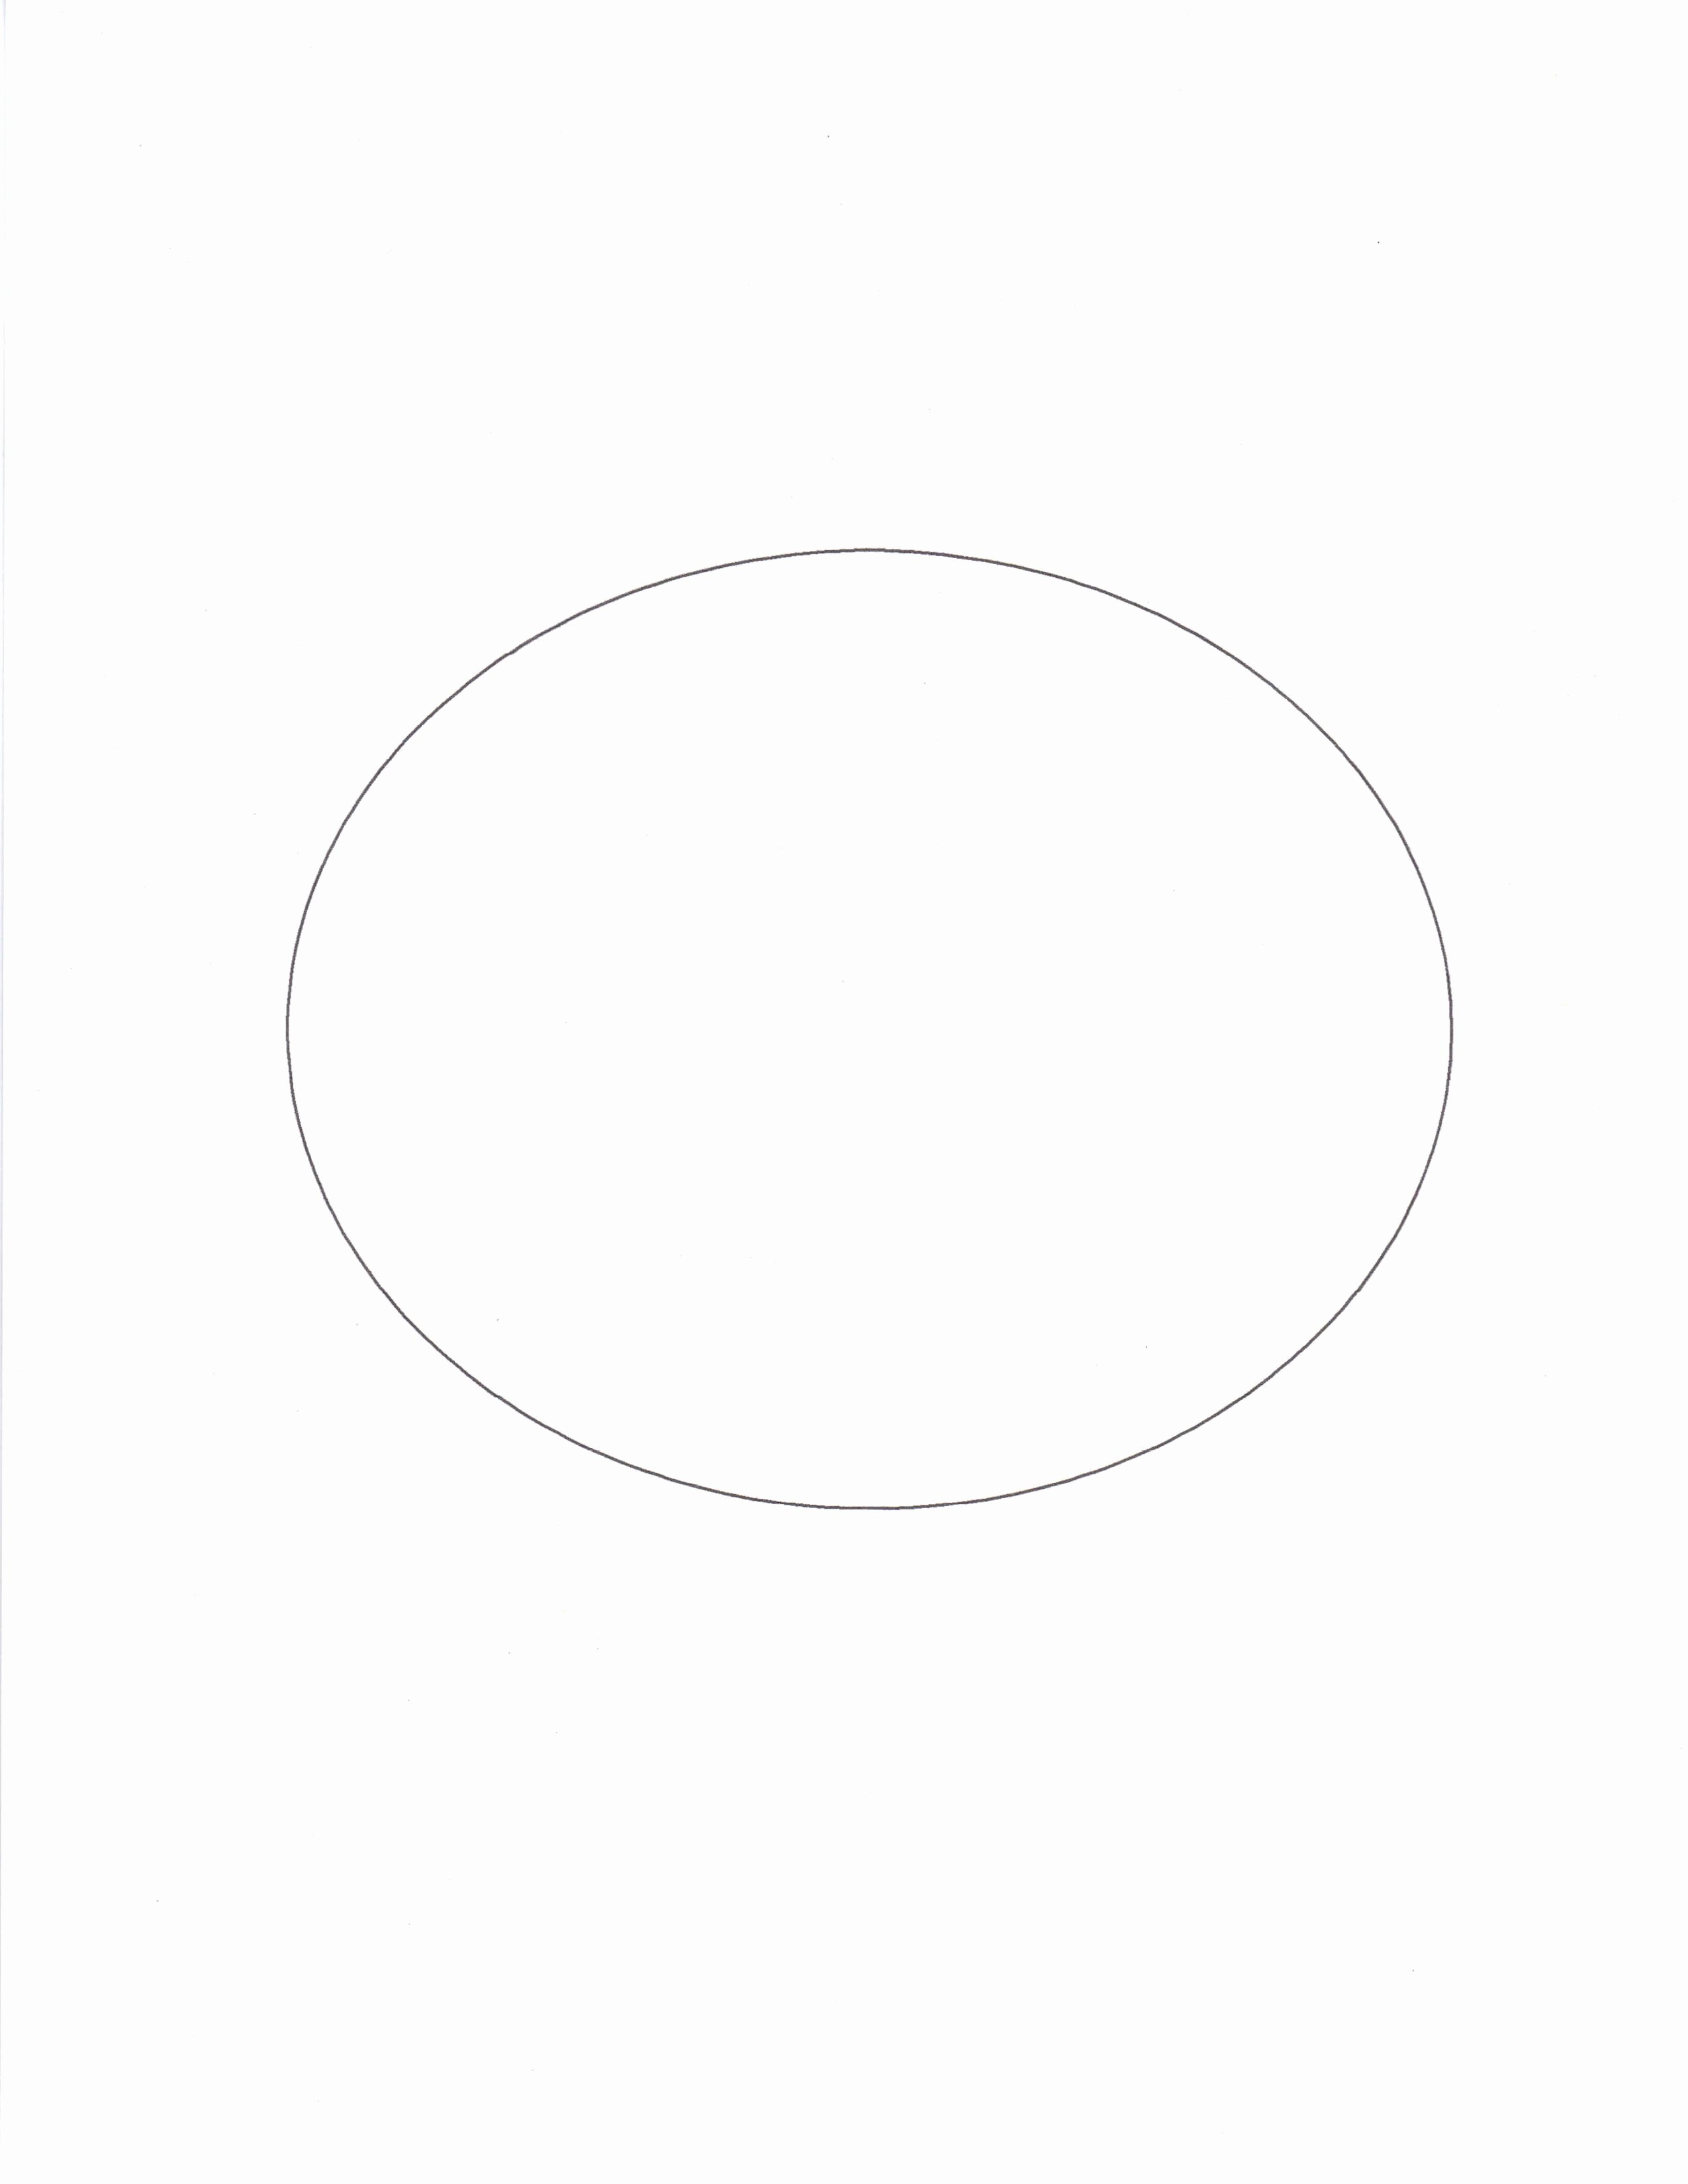 Shape Templates to Cut Out Best Of Best S Of 4x8 Oval Shape Print Out Oval Shape